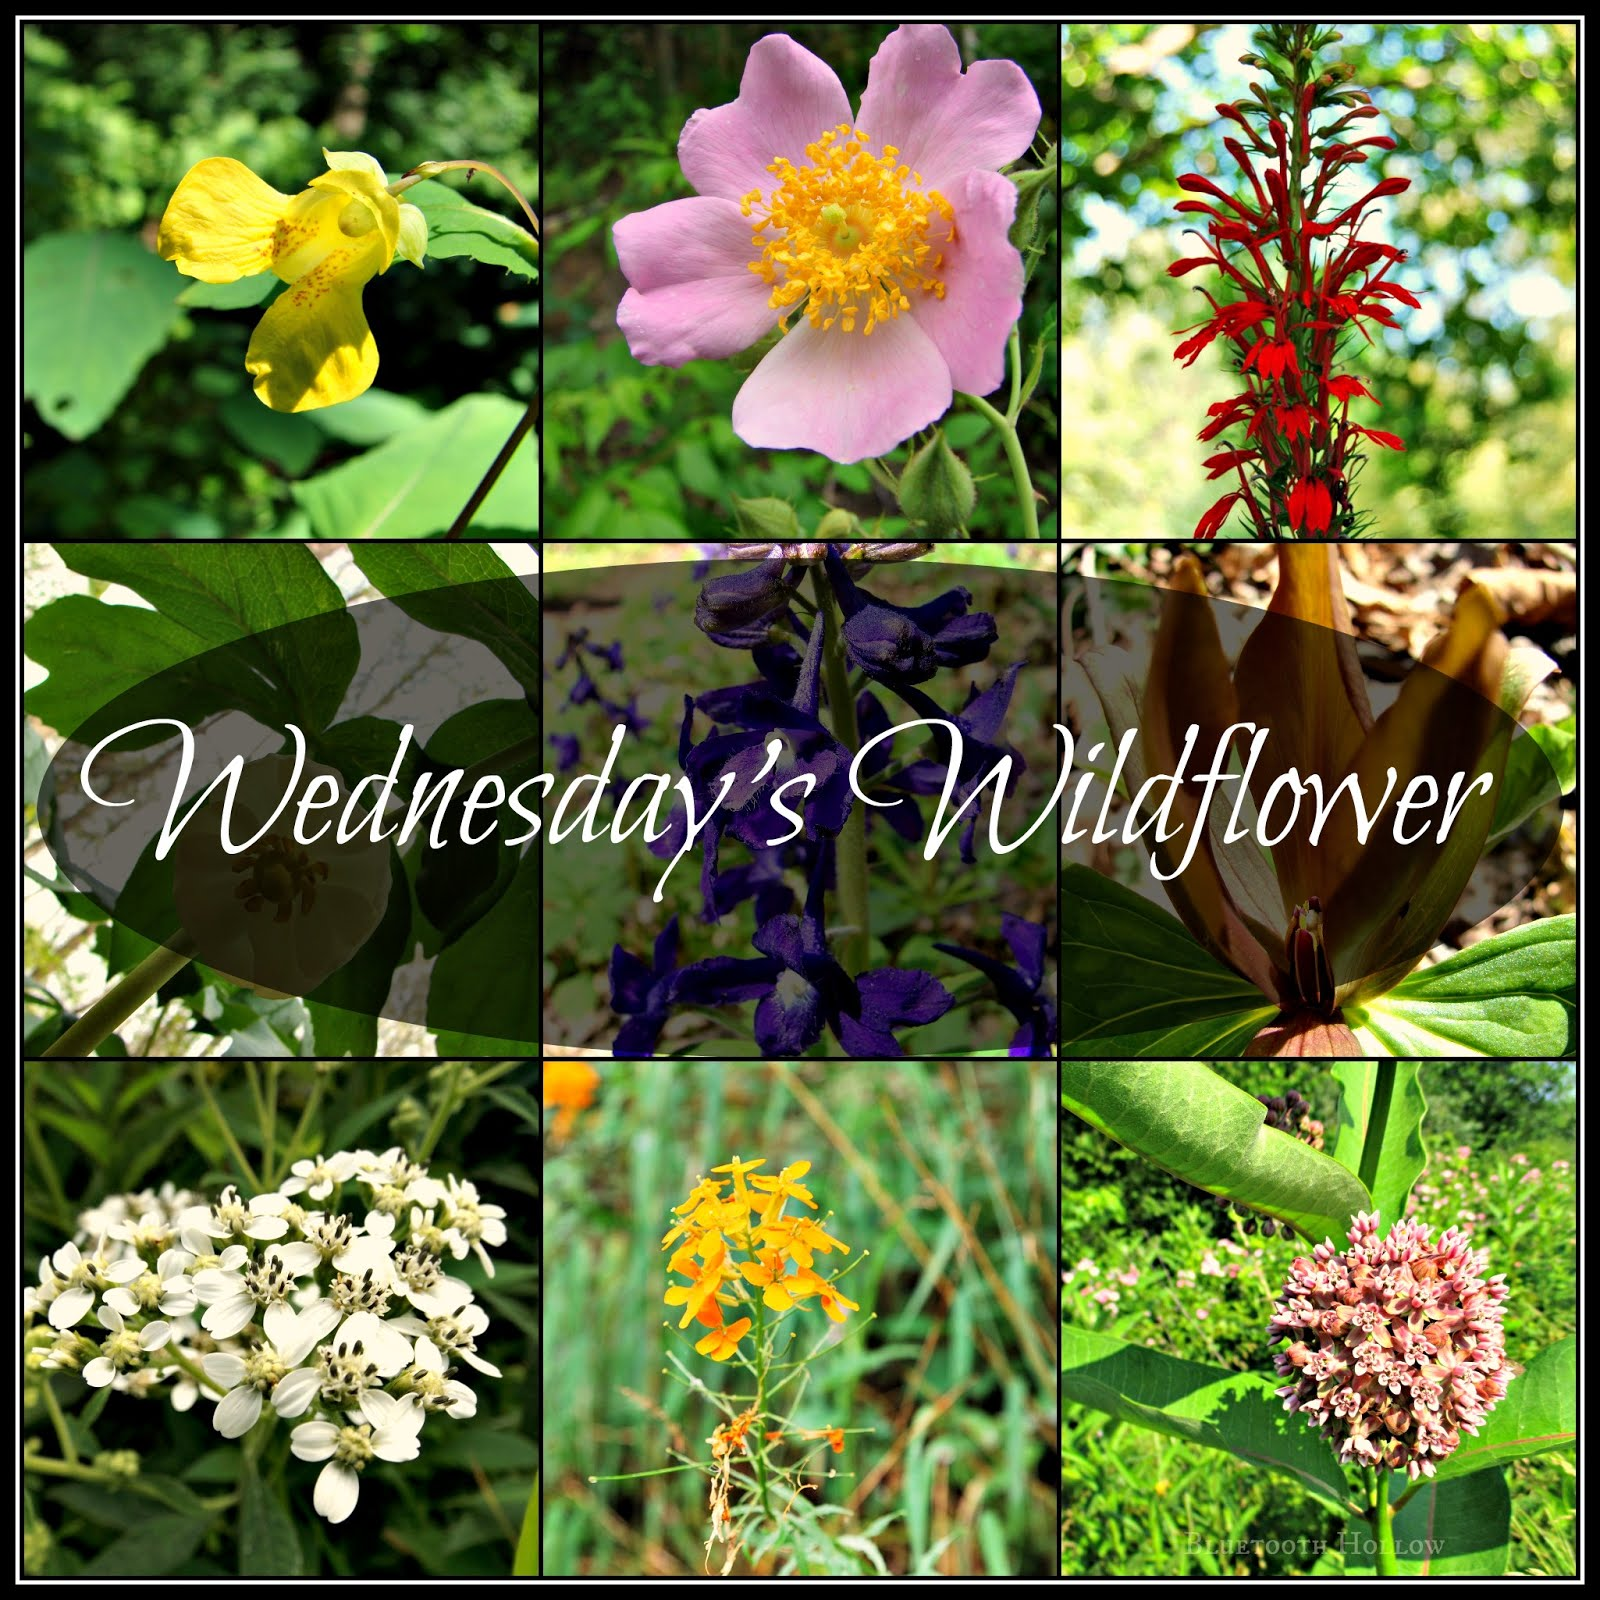 Wednesday's Wildflower Archive